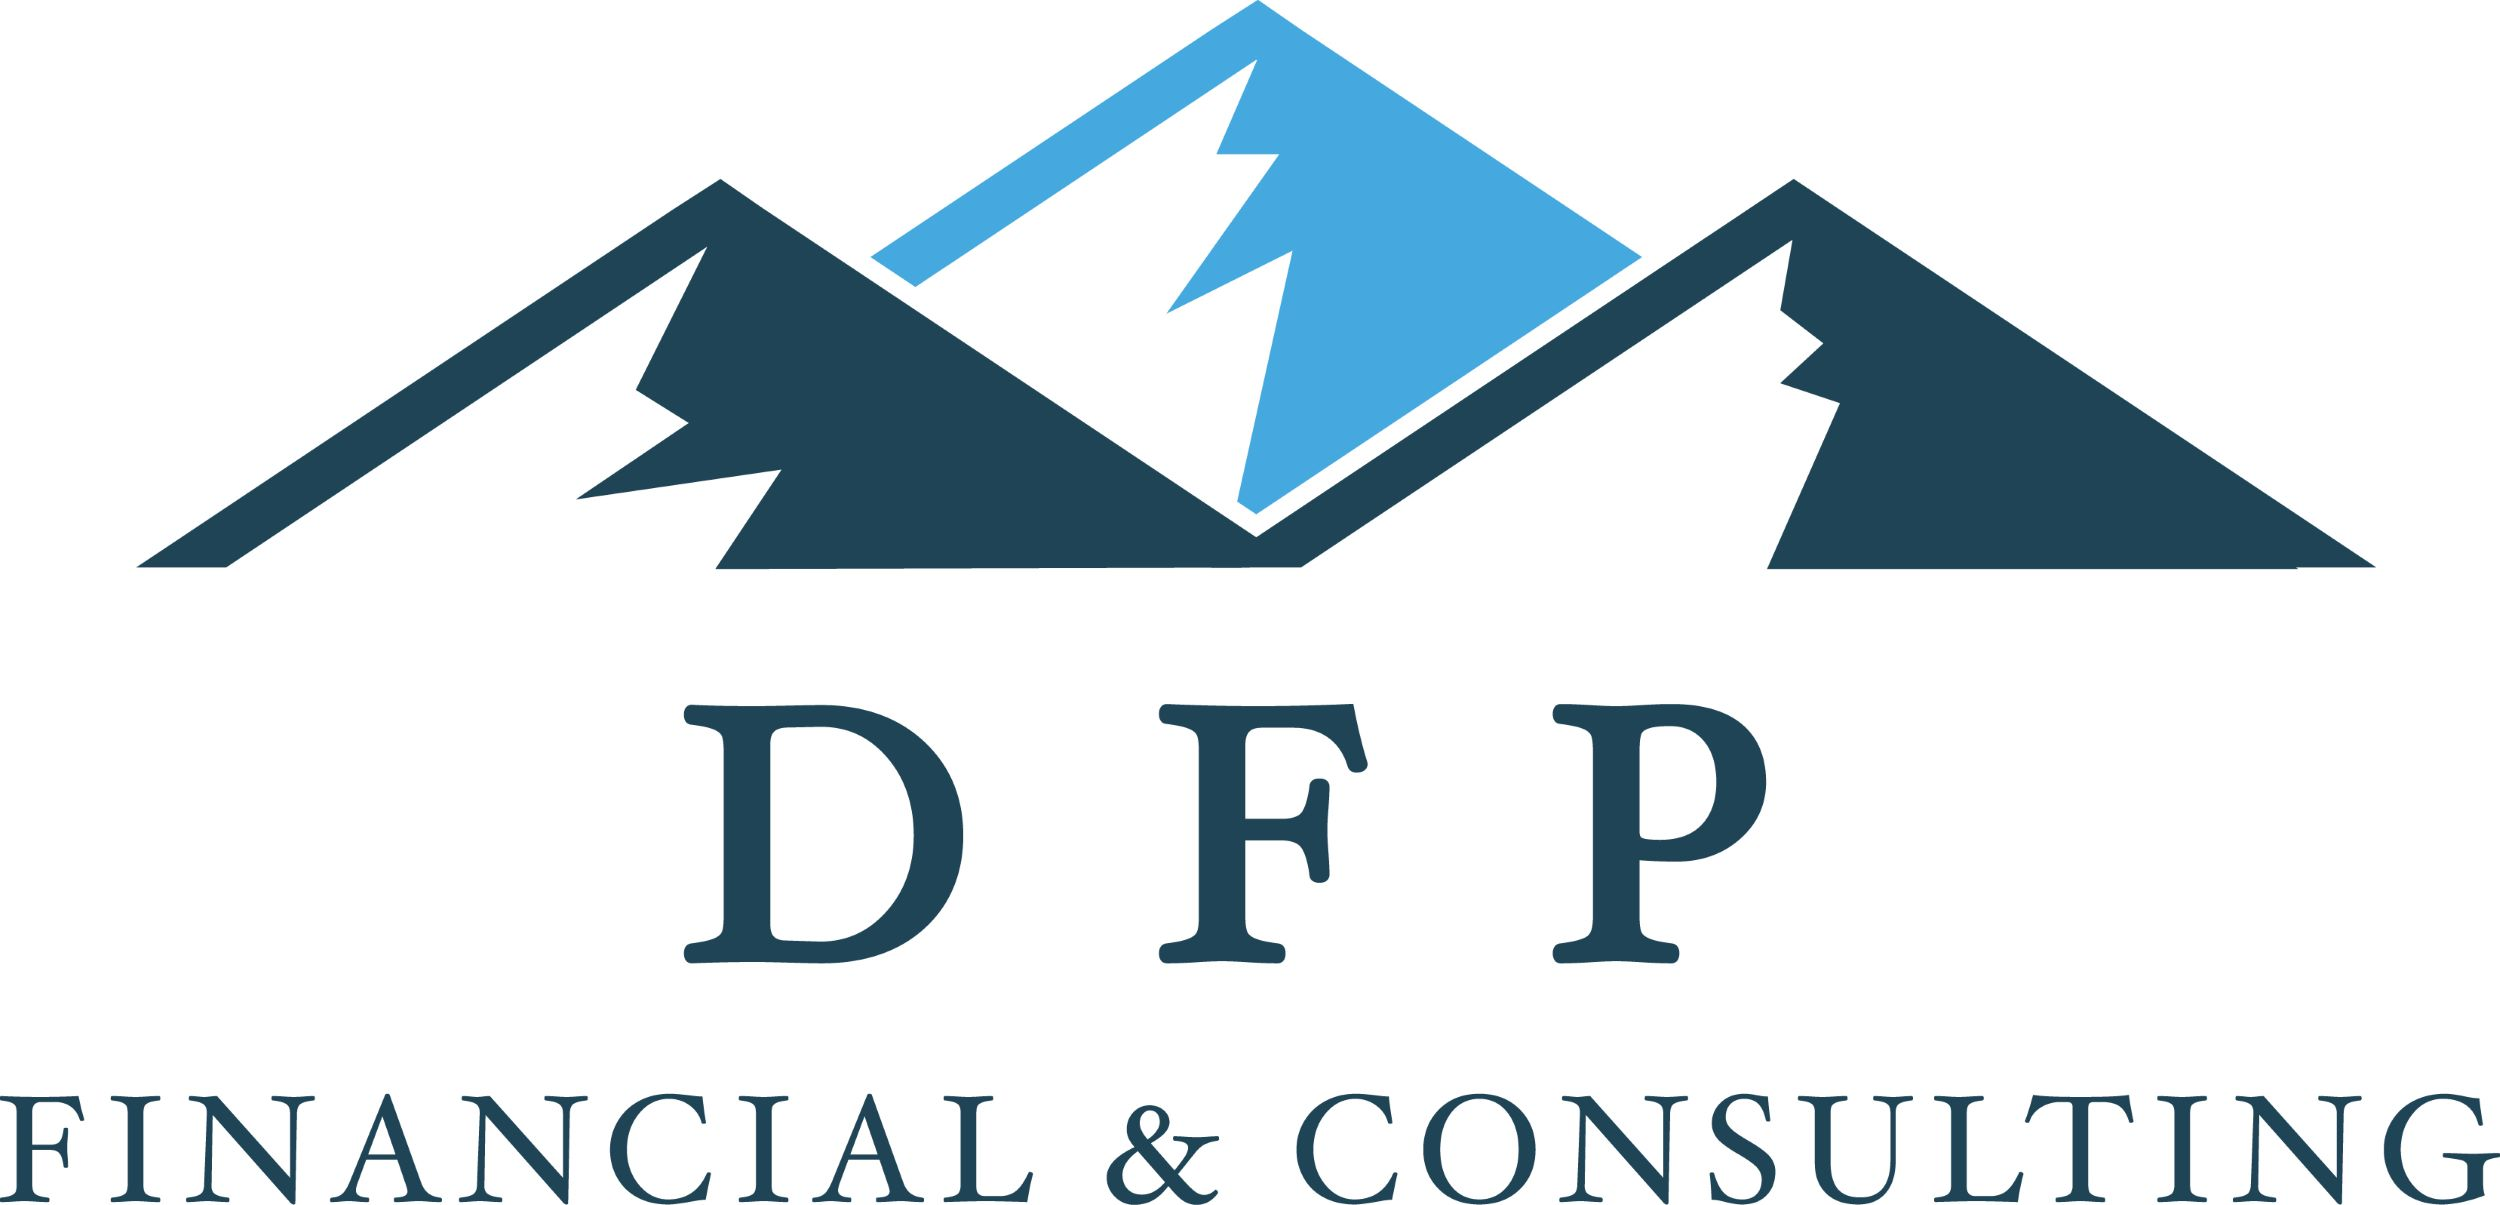 DFP Financial & Consulting